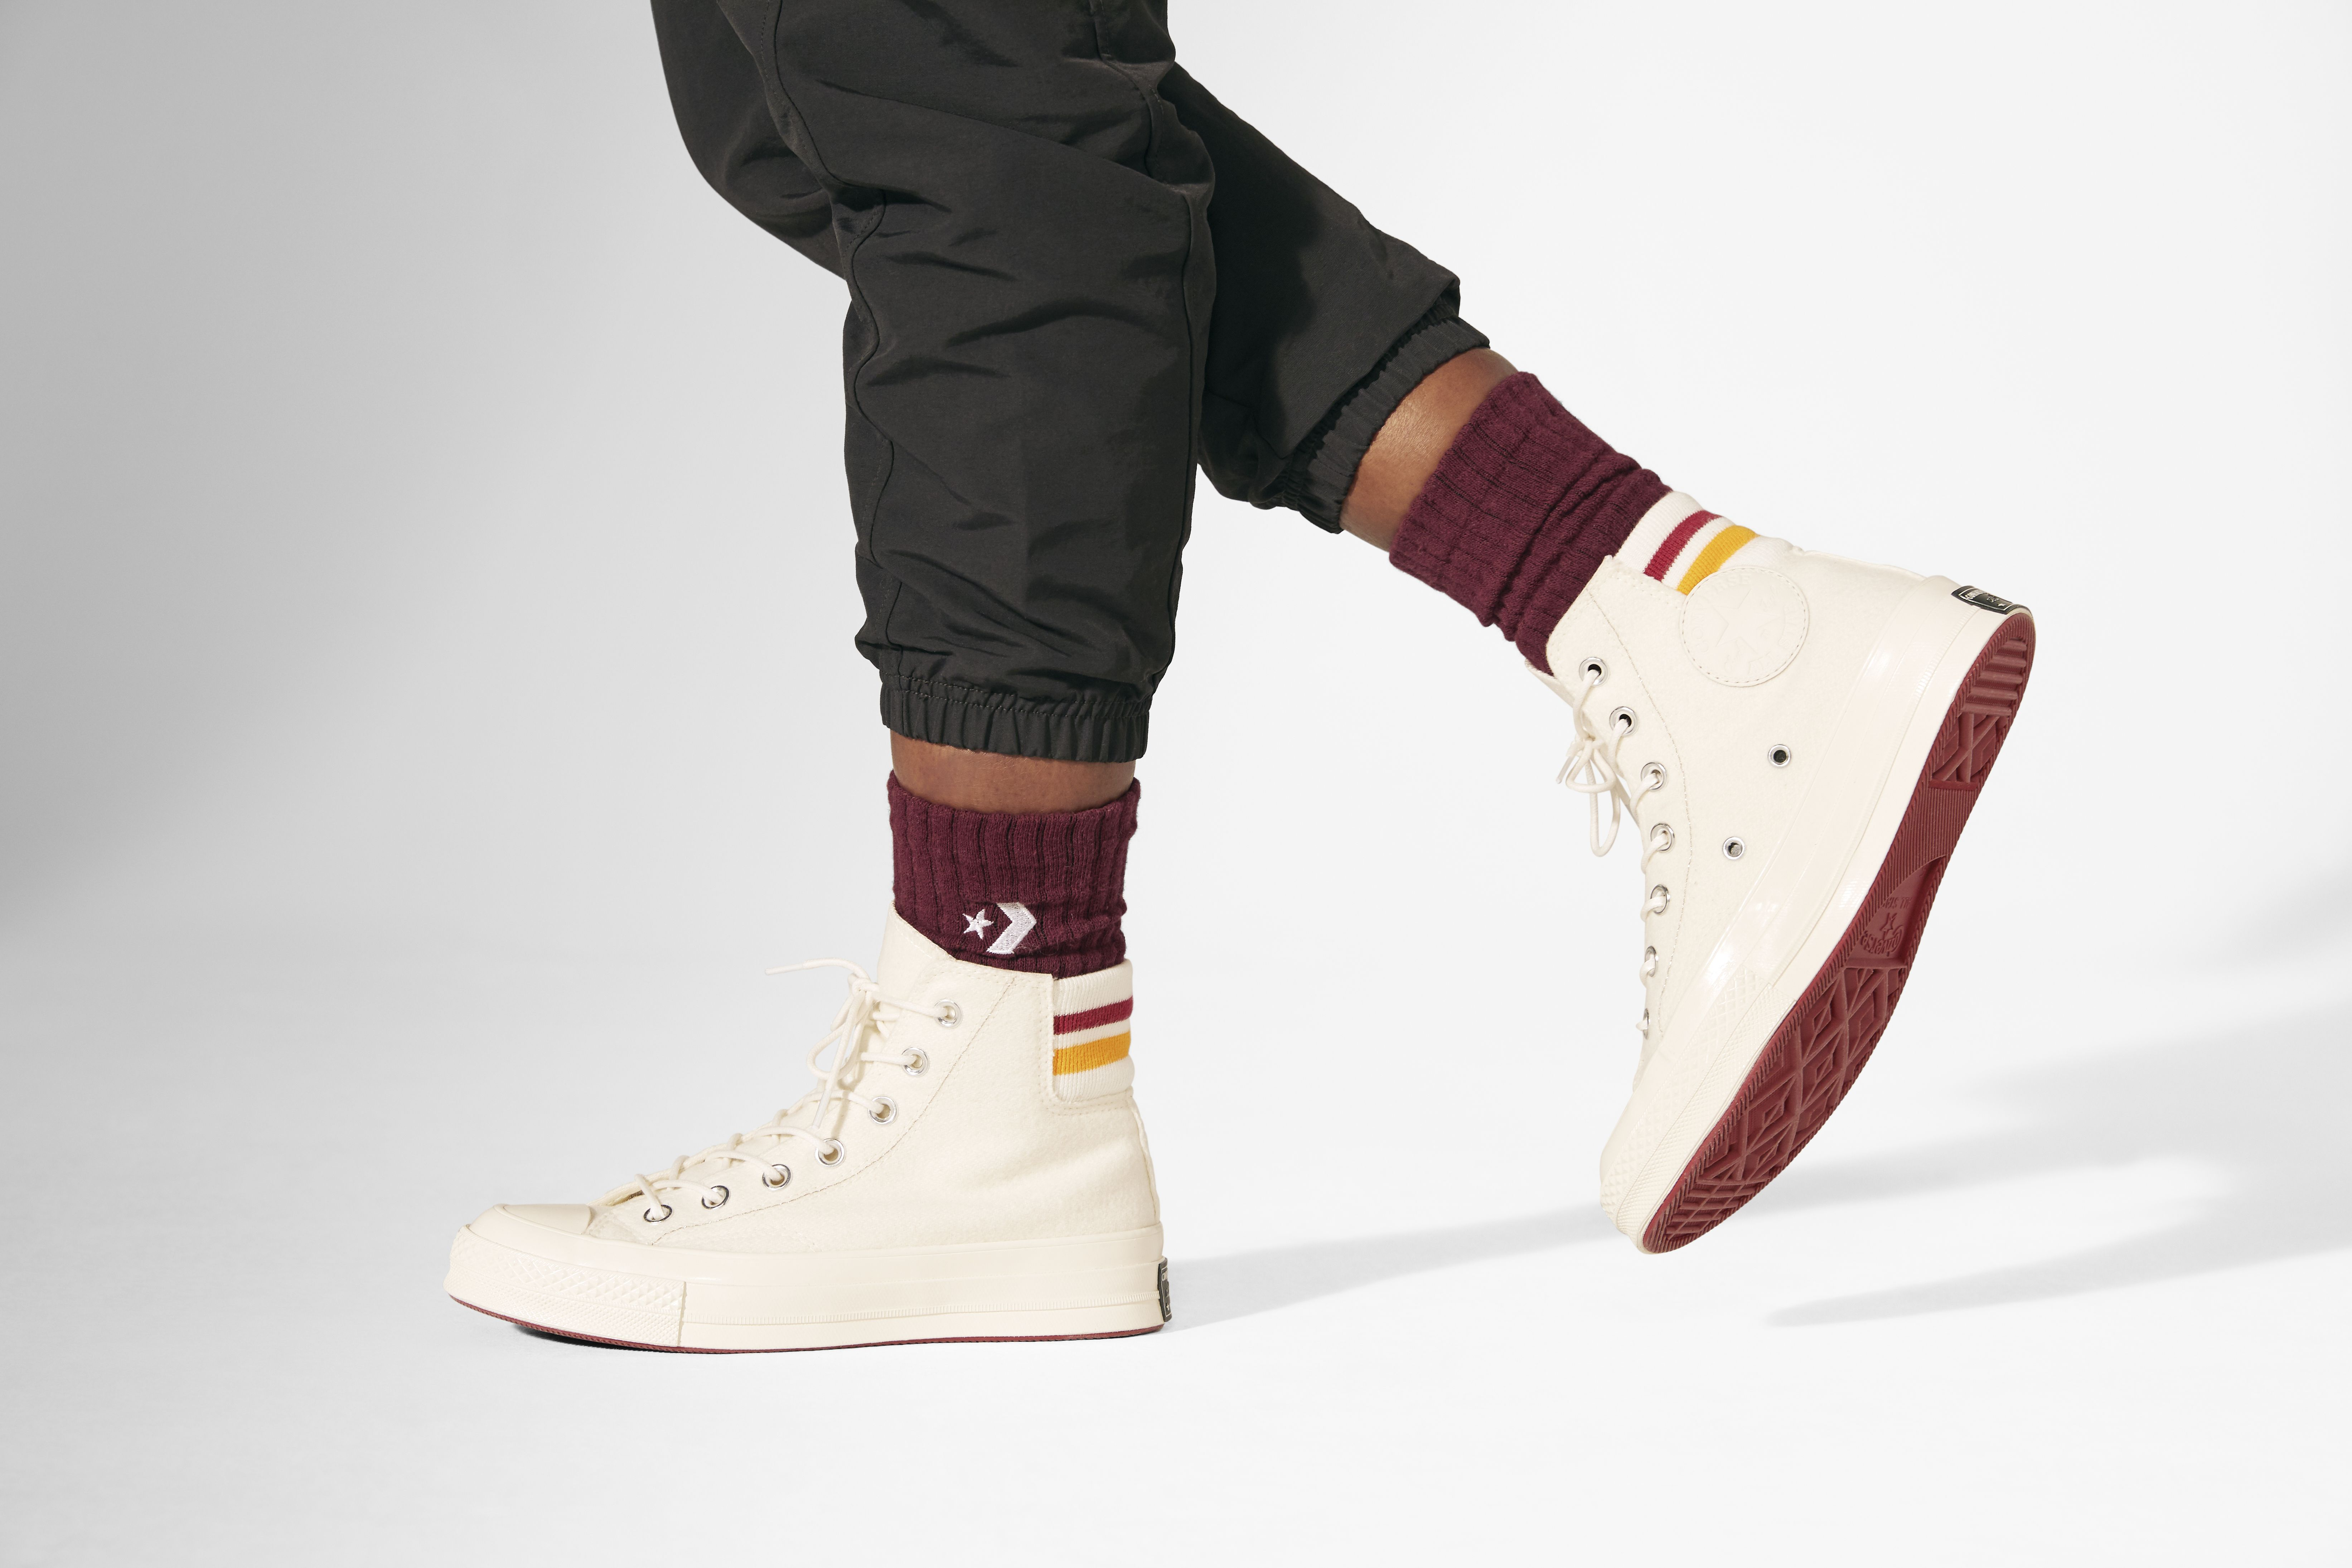 Smart in style and function, the Chuck 70 Retro Stripe High